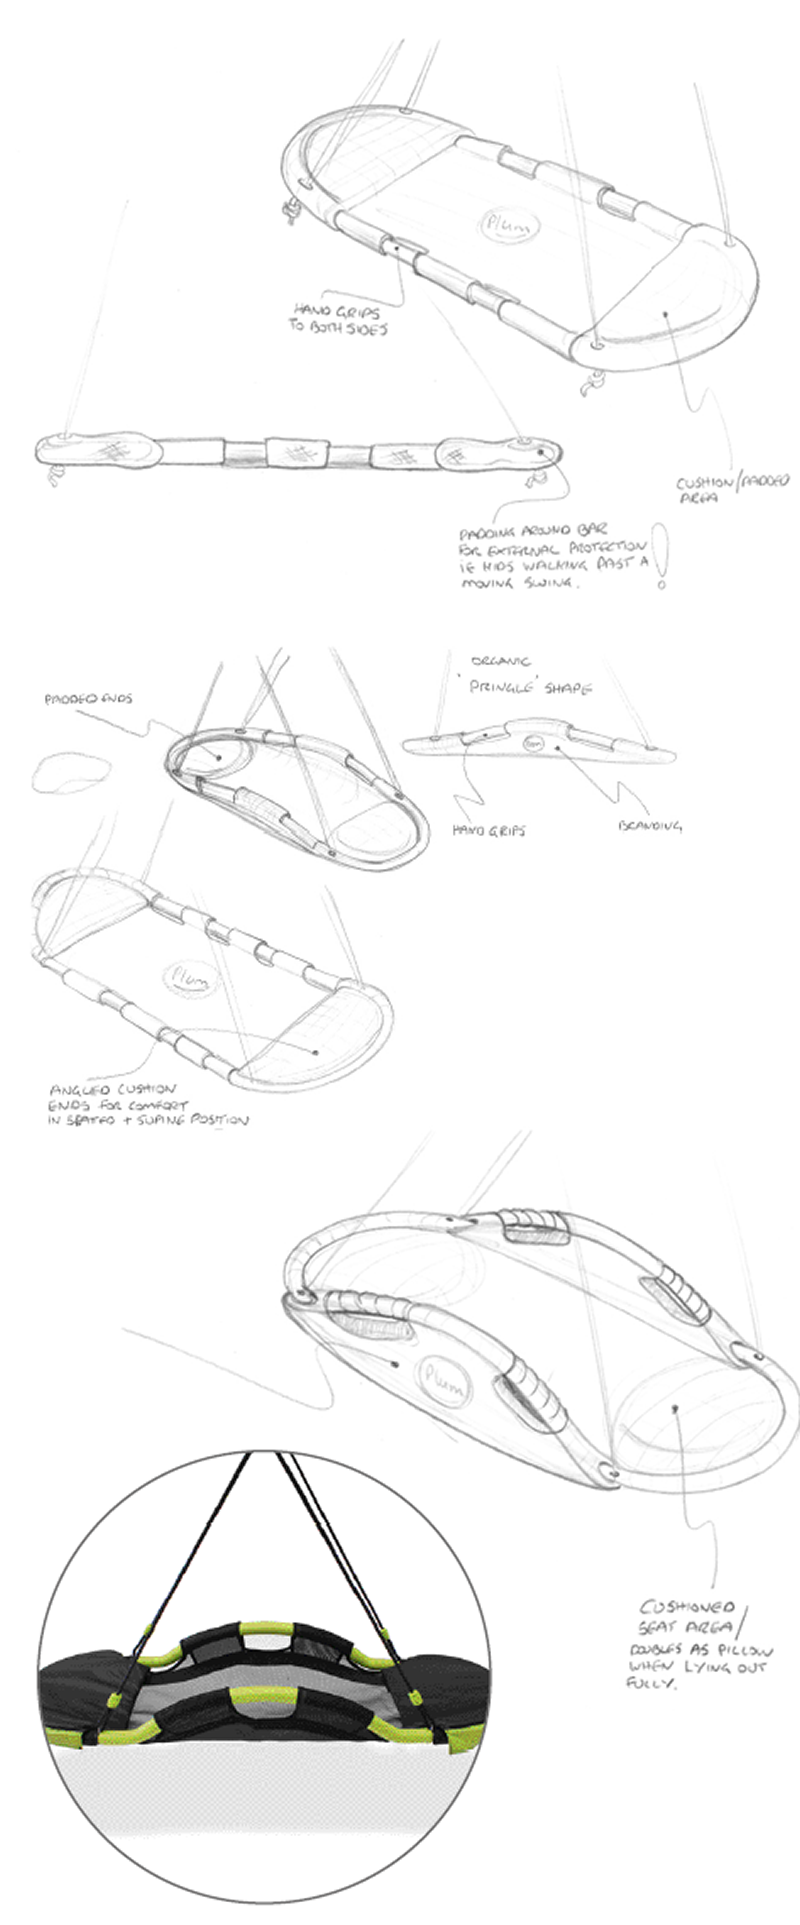 glide nest swing concept sketches